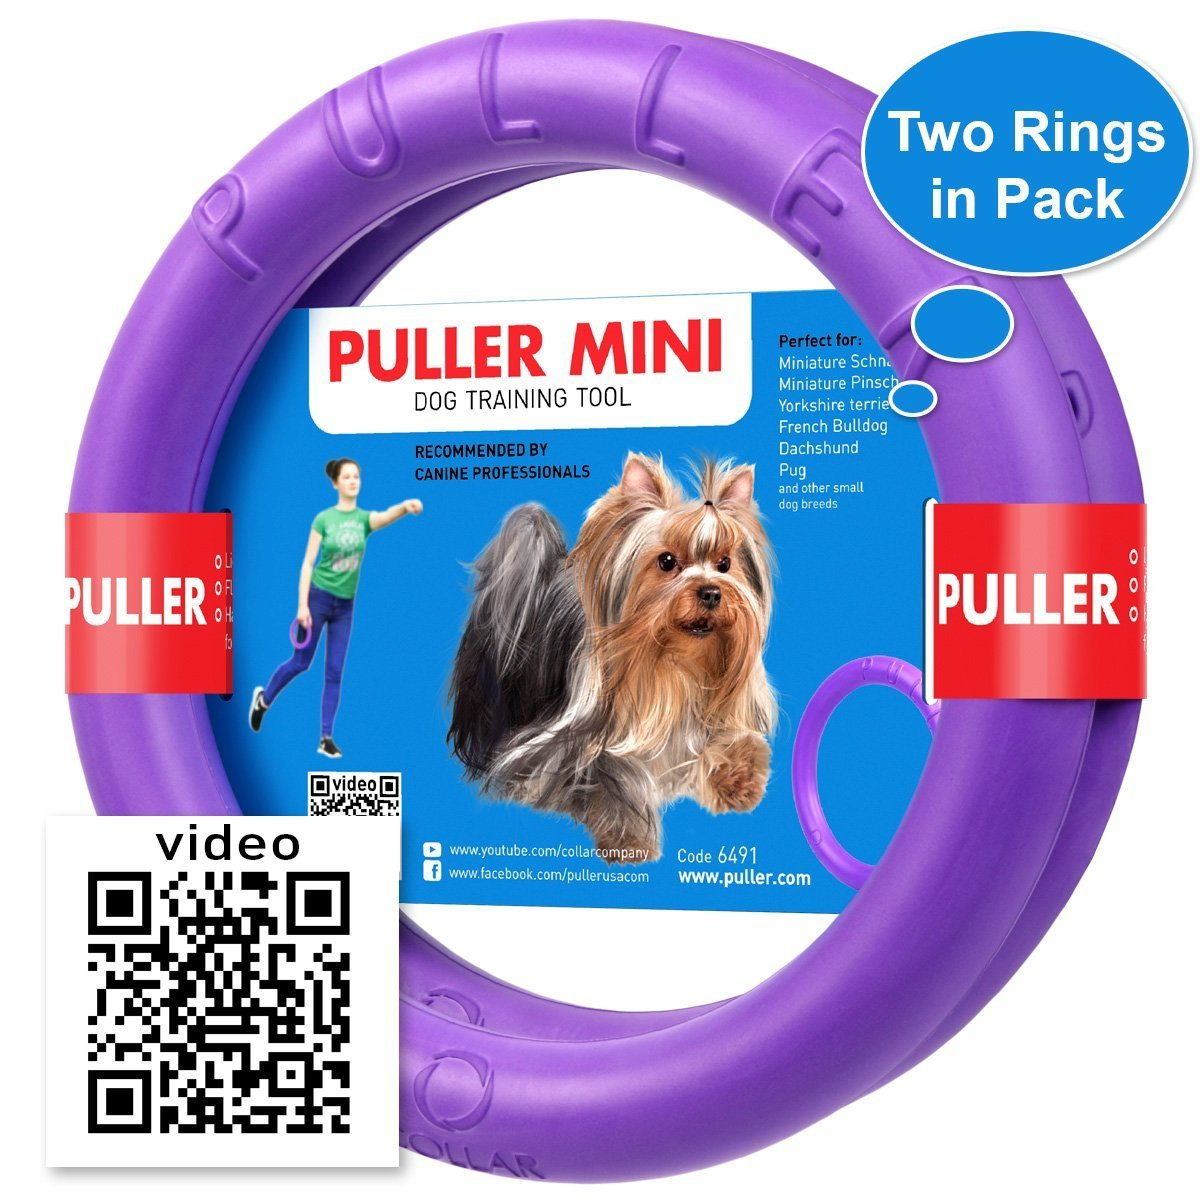 Dog Toy - Interactive Small Midi Dog Puppies Training - Fetch Toy - Dental Healthy - Dog Toys Set 2 Rings by Puller Mini Plus - Size 7 inches